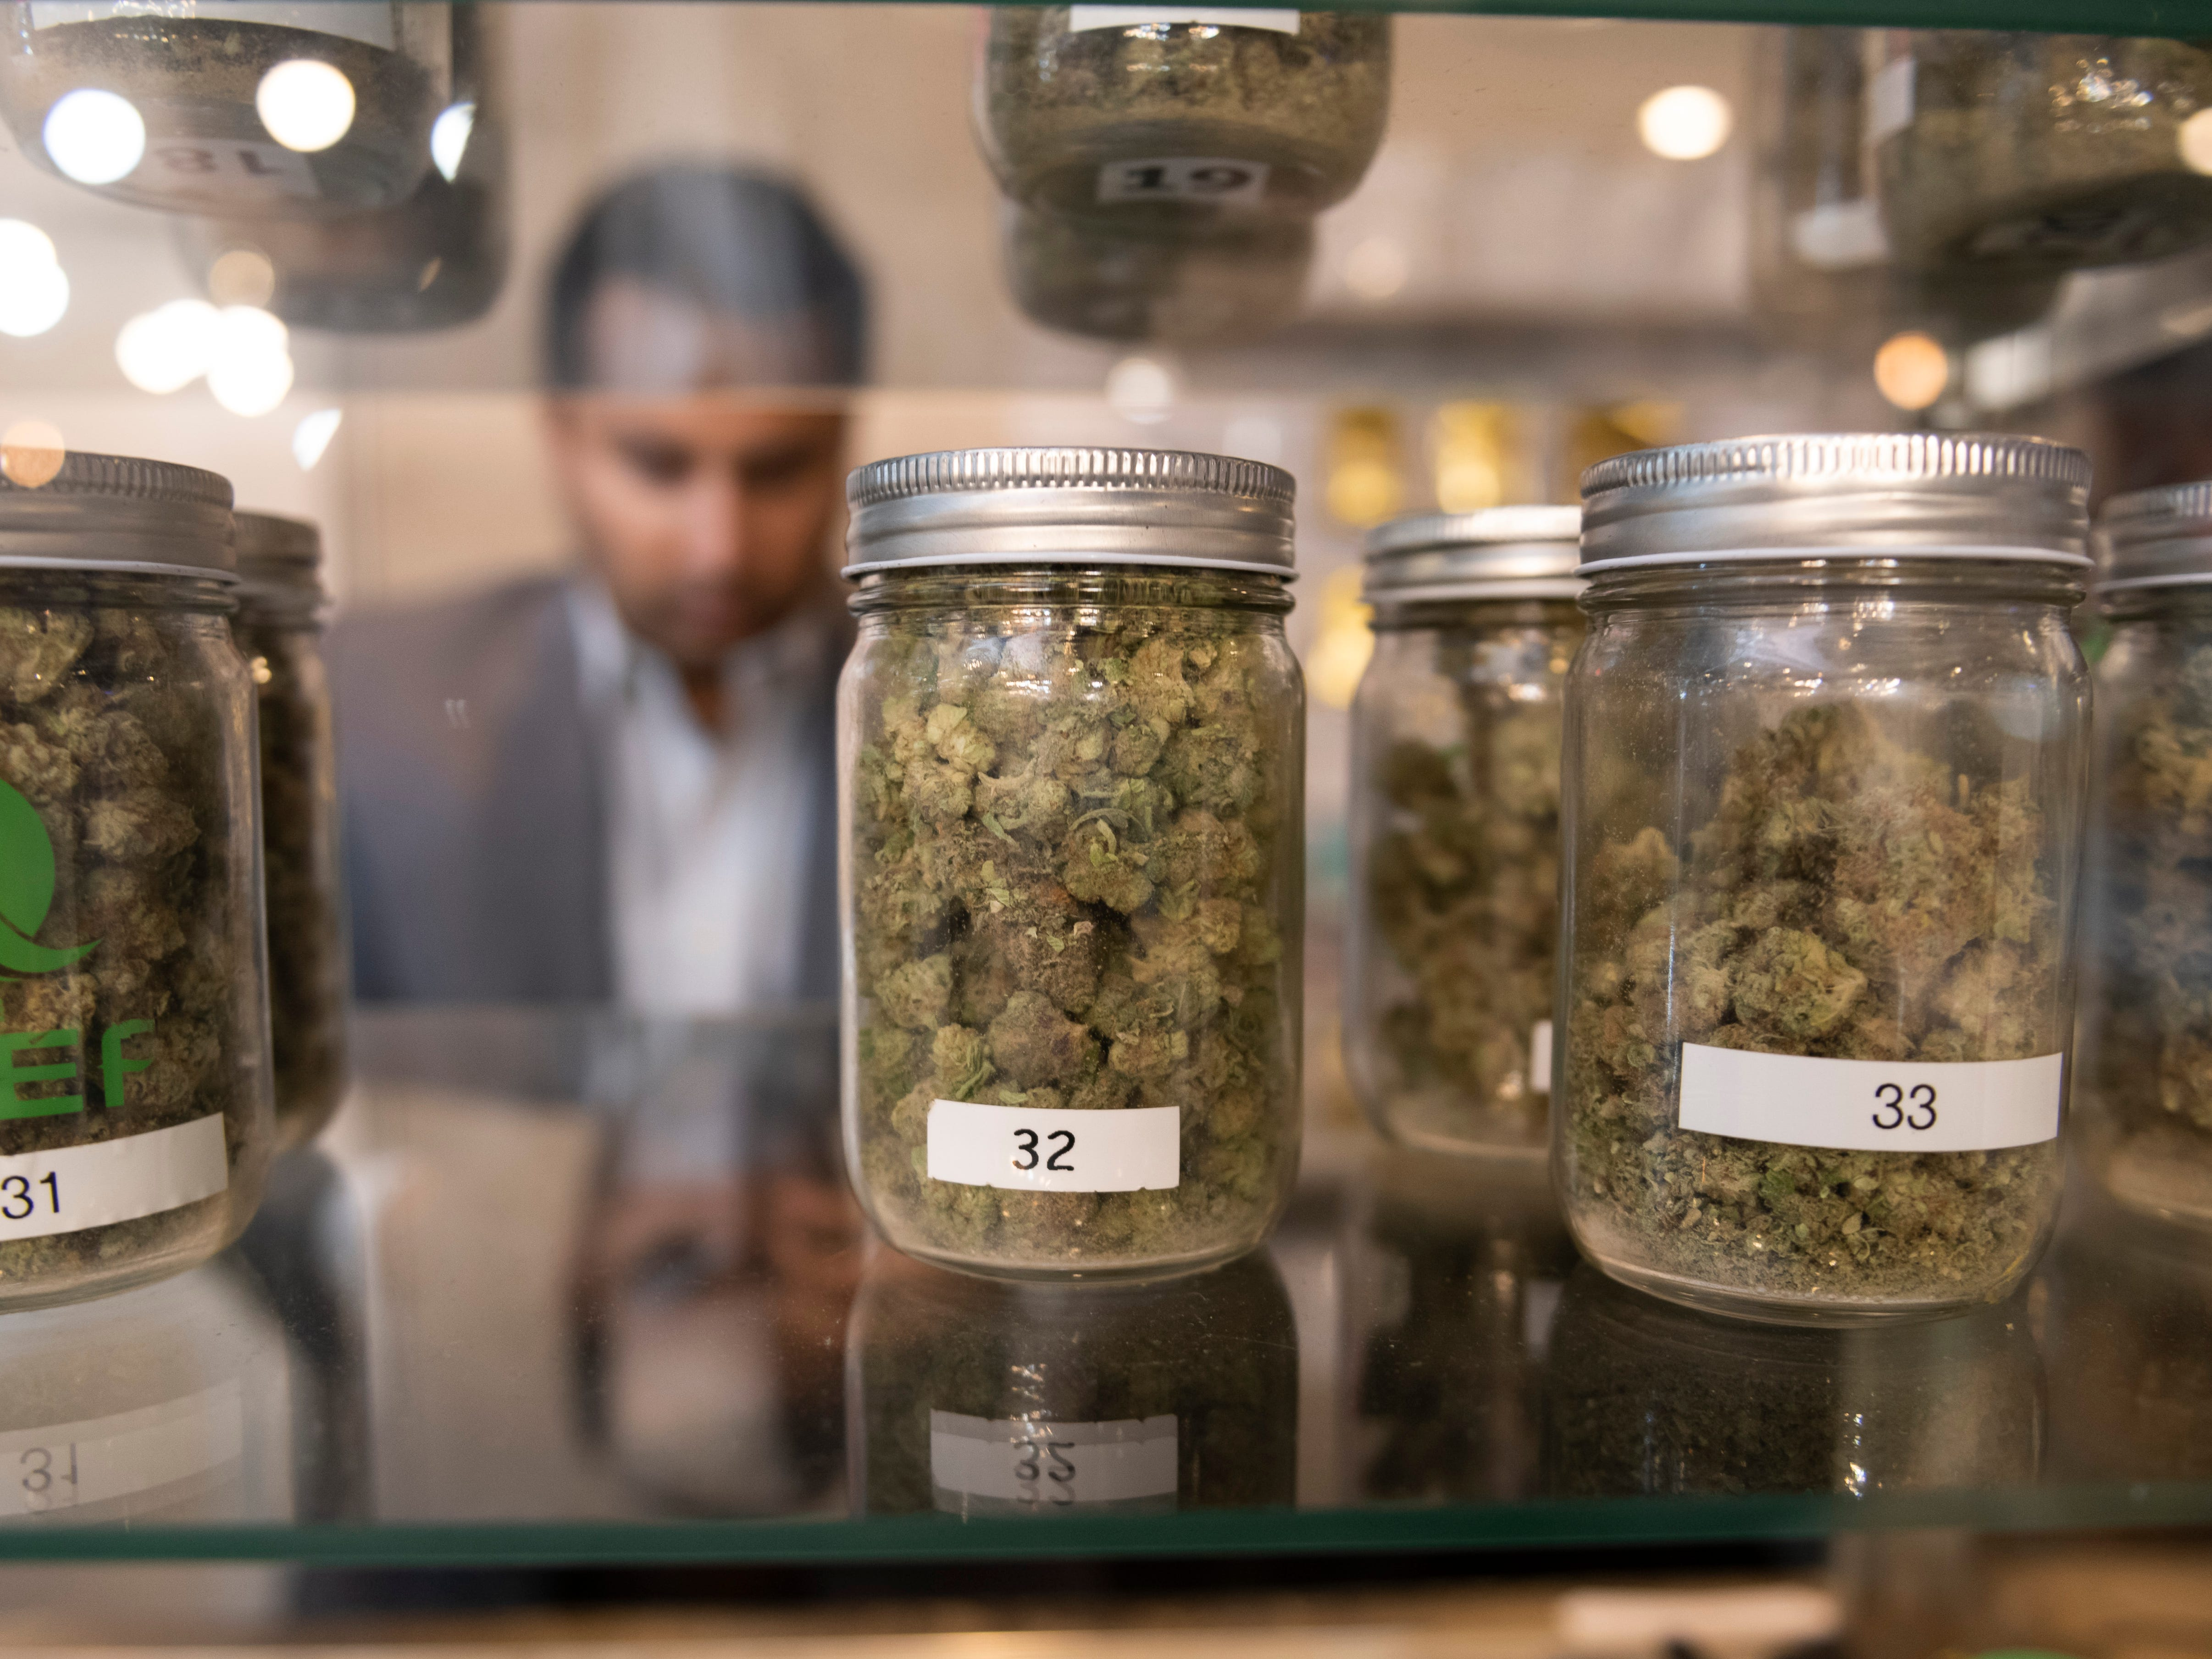 Proposal 1 would allow adultsover the age of 21 to possess up to 2.5 ounces of marijuana and grow up to 12 plants per household.